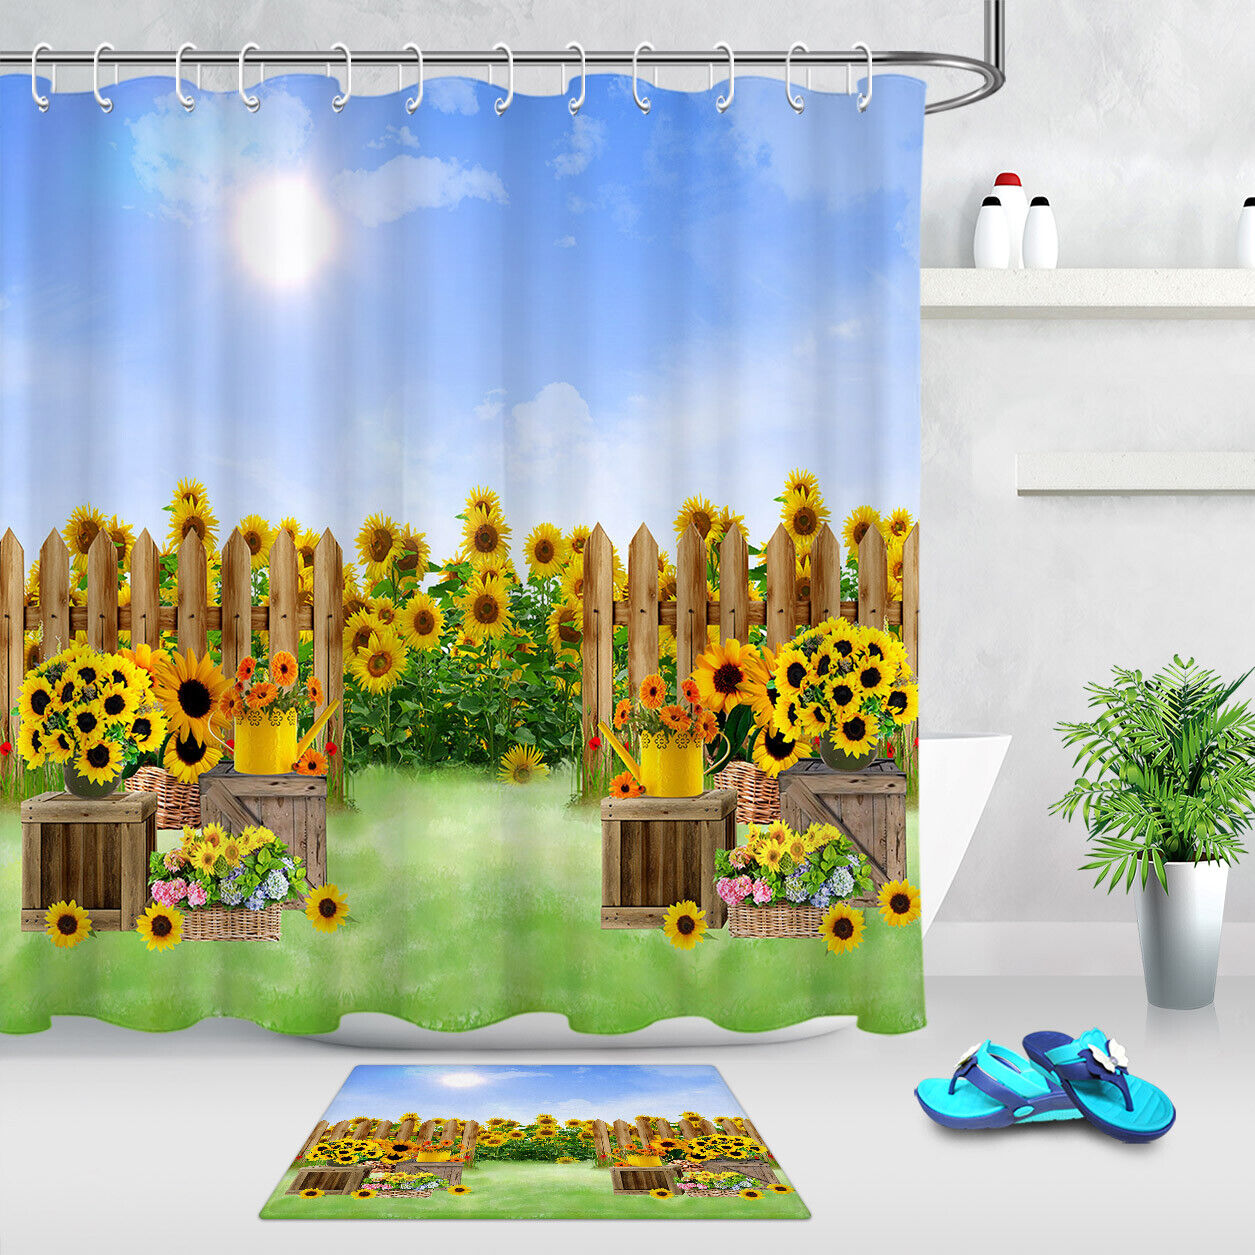 Details About Natural Golden Sunflower Field Shower Curtain Set Bathroom Fabric Bath Curtains